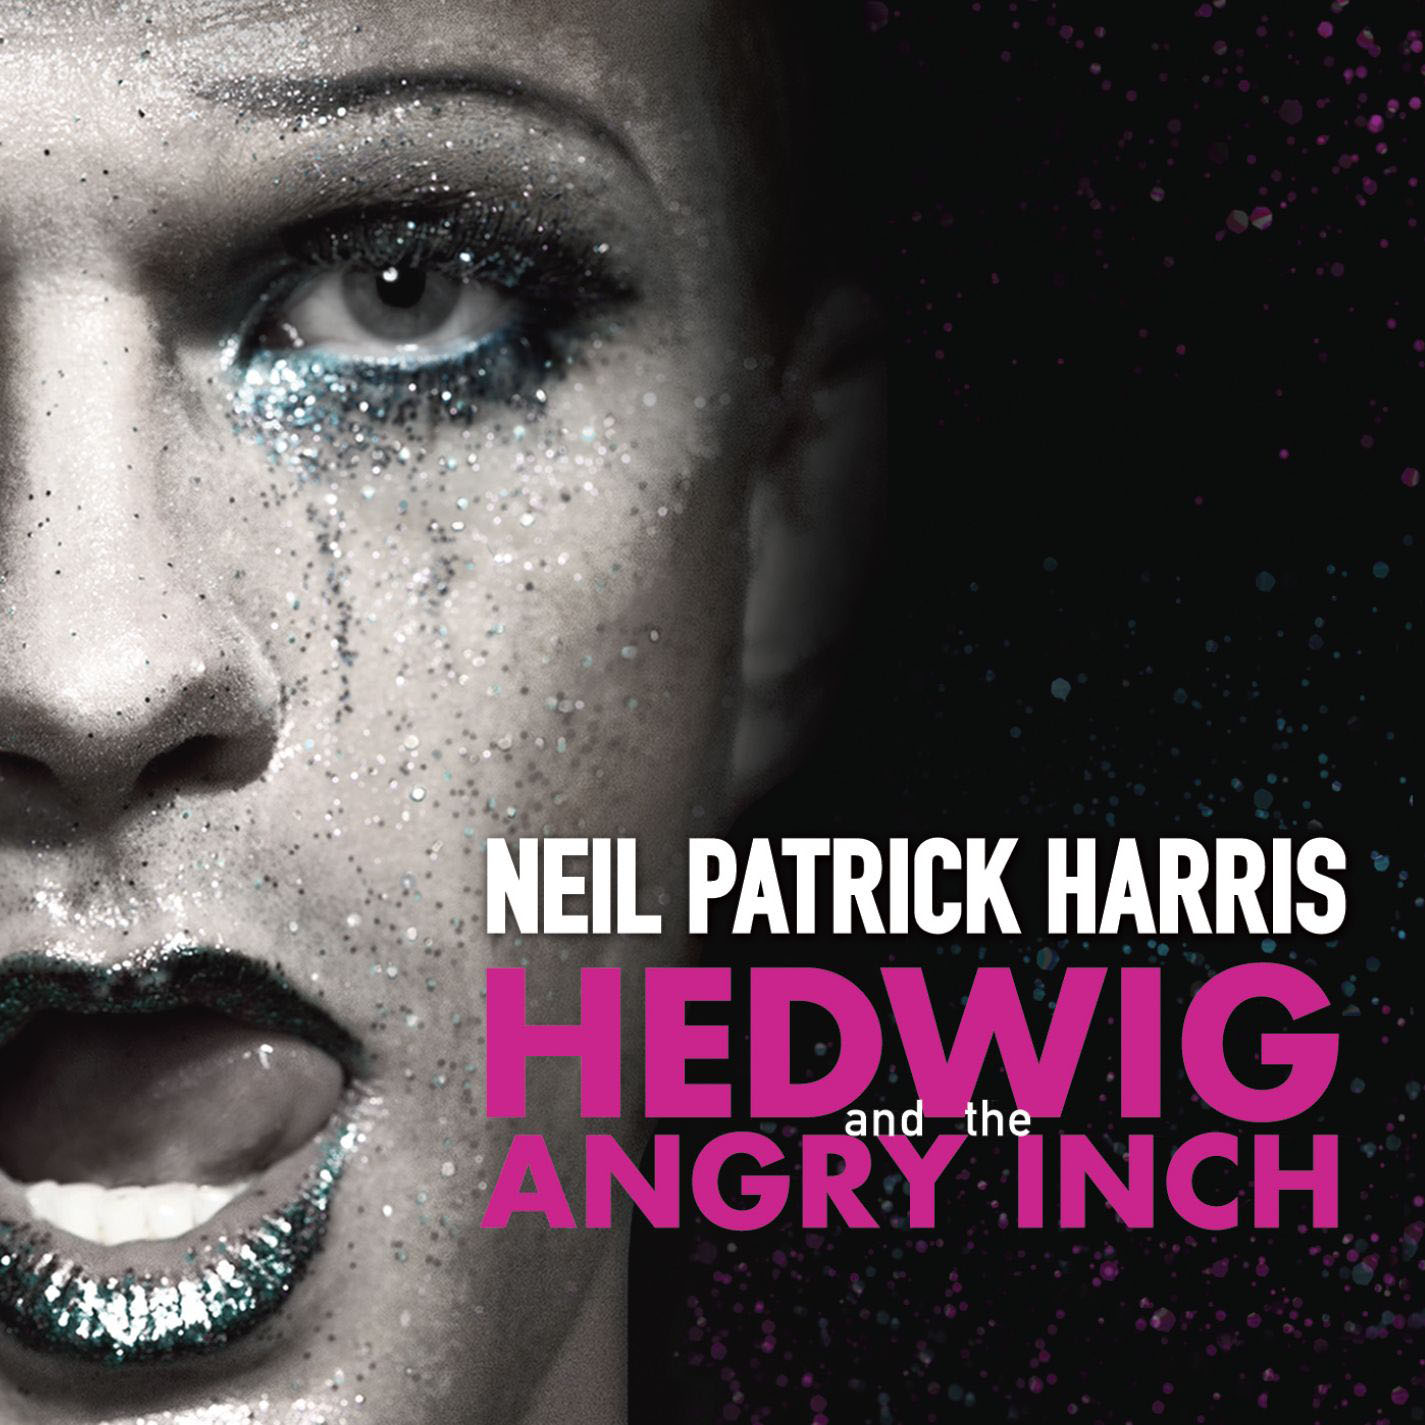 Hedwig And The Angry Inch - Hedwig And The Angry Inch Original Broadway Cast Recording